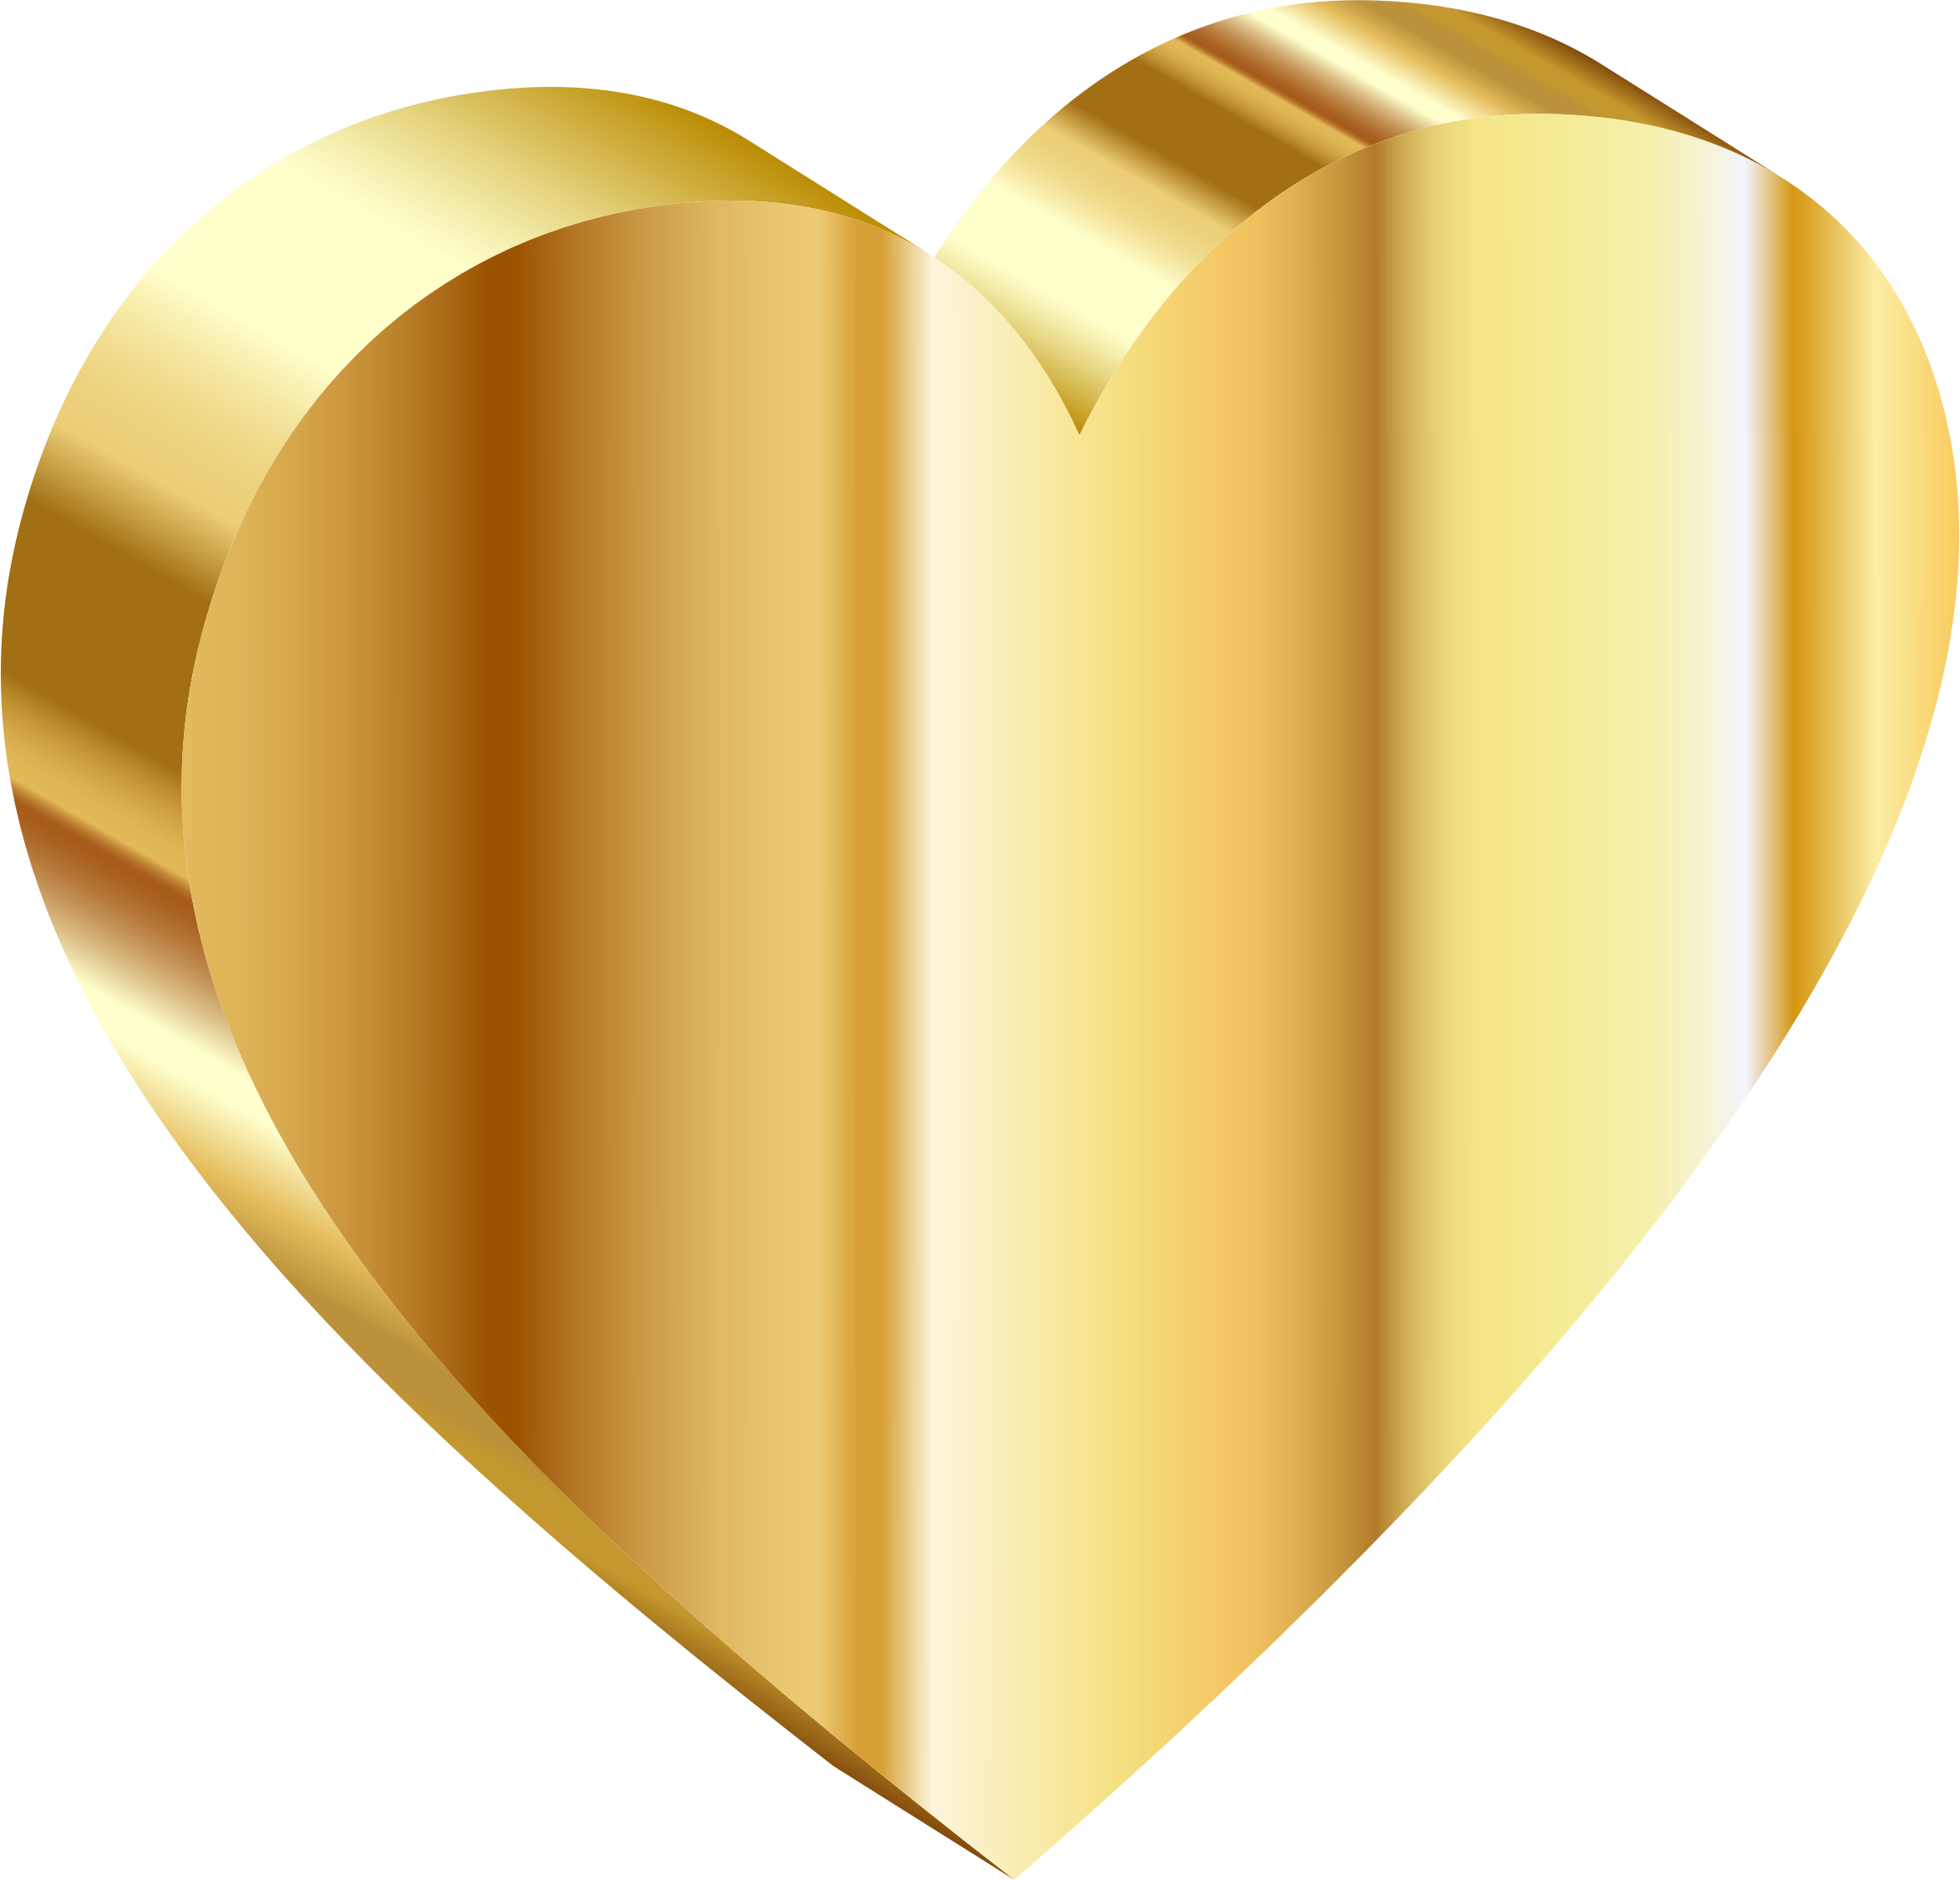 Gold heart outline clipart image stock Clipart - 3D Heart Of Gold image stock